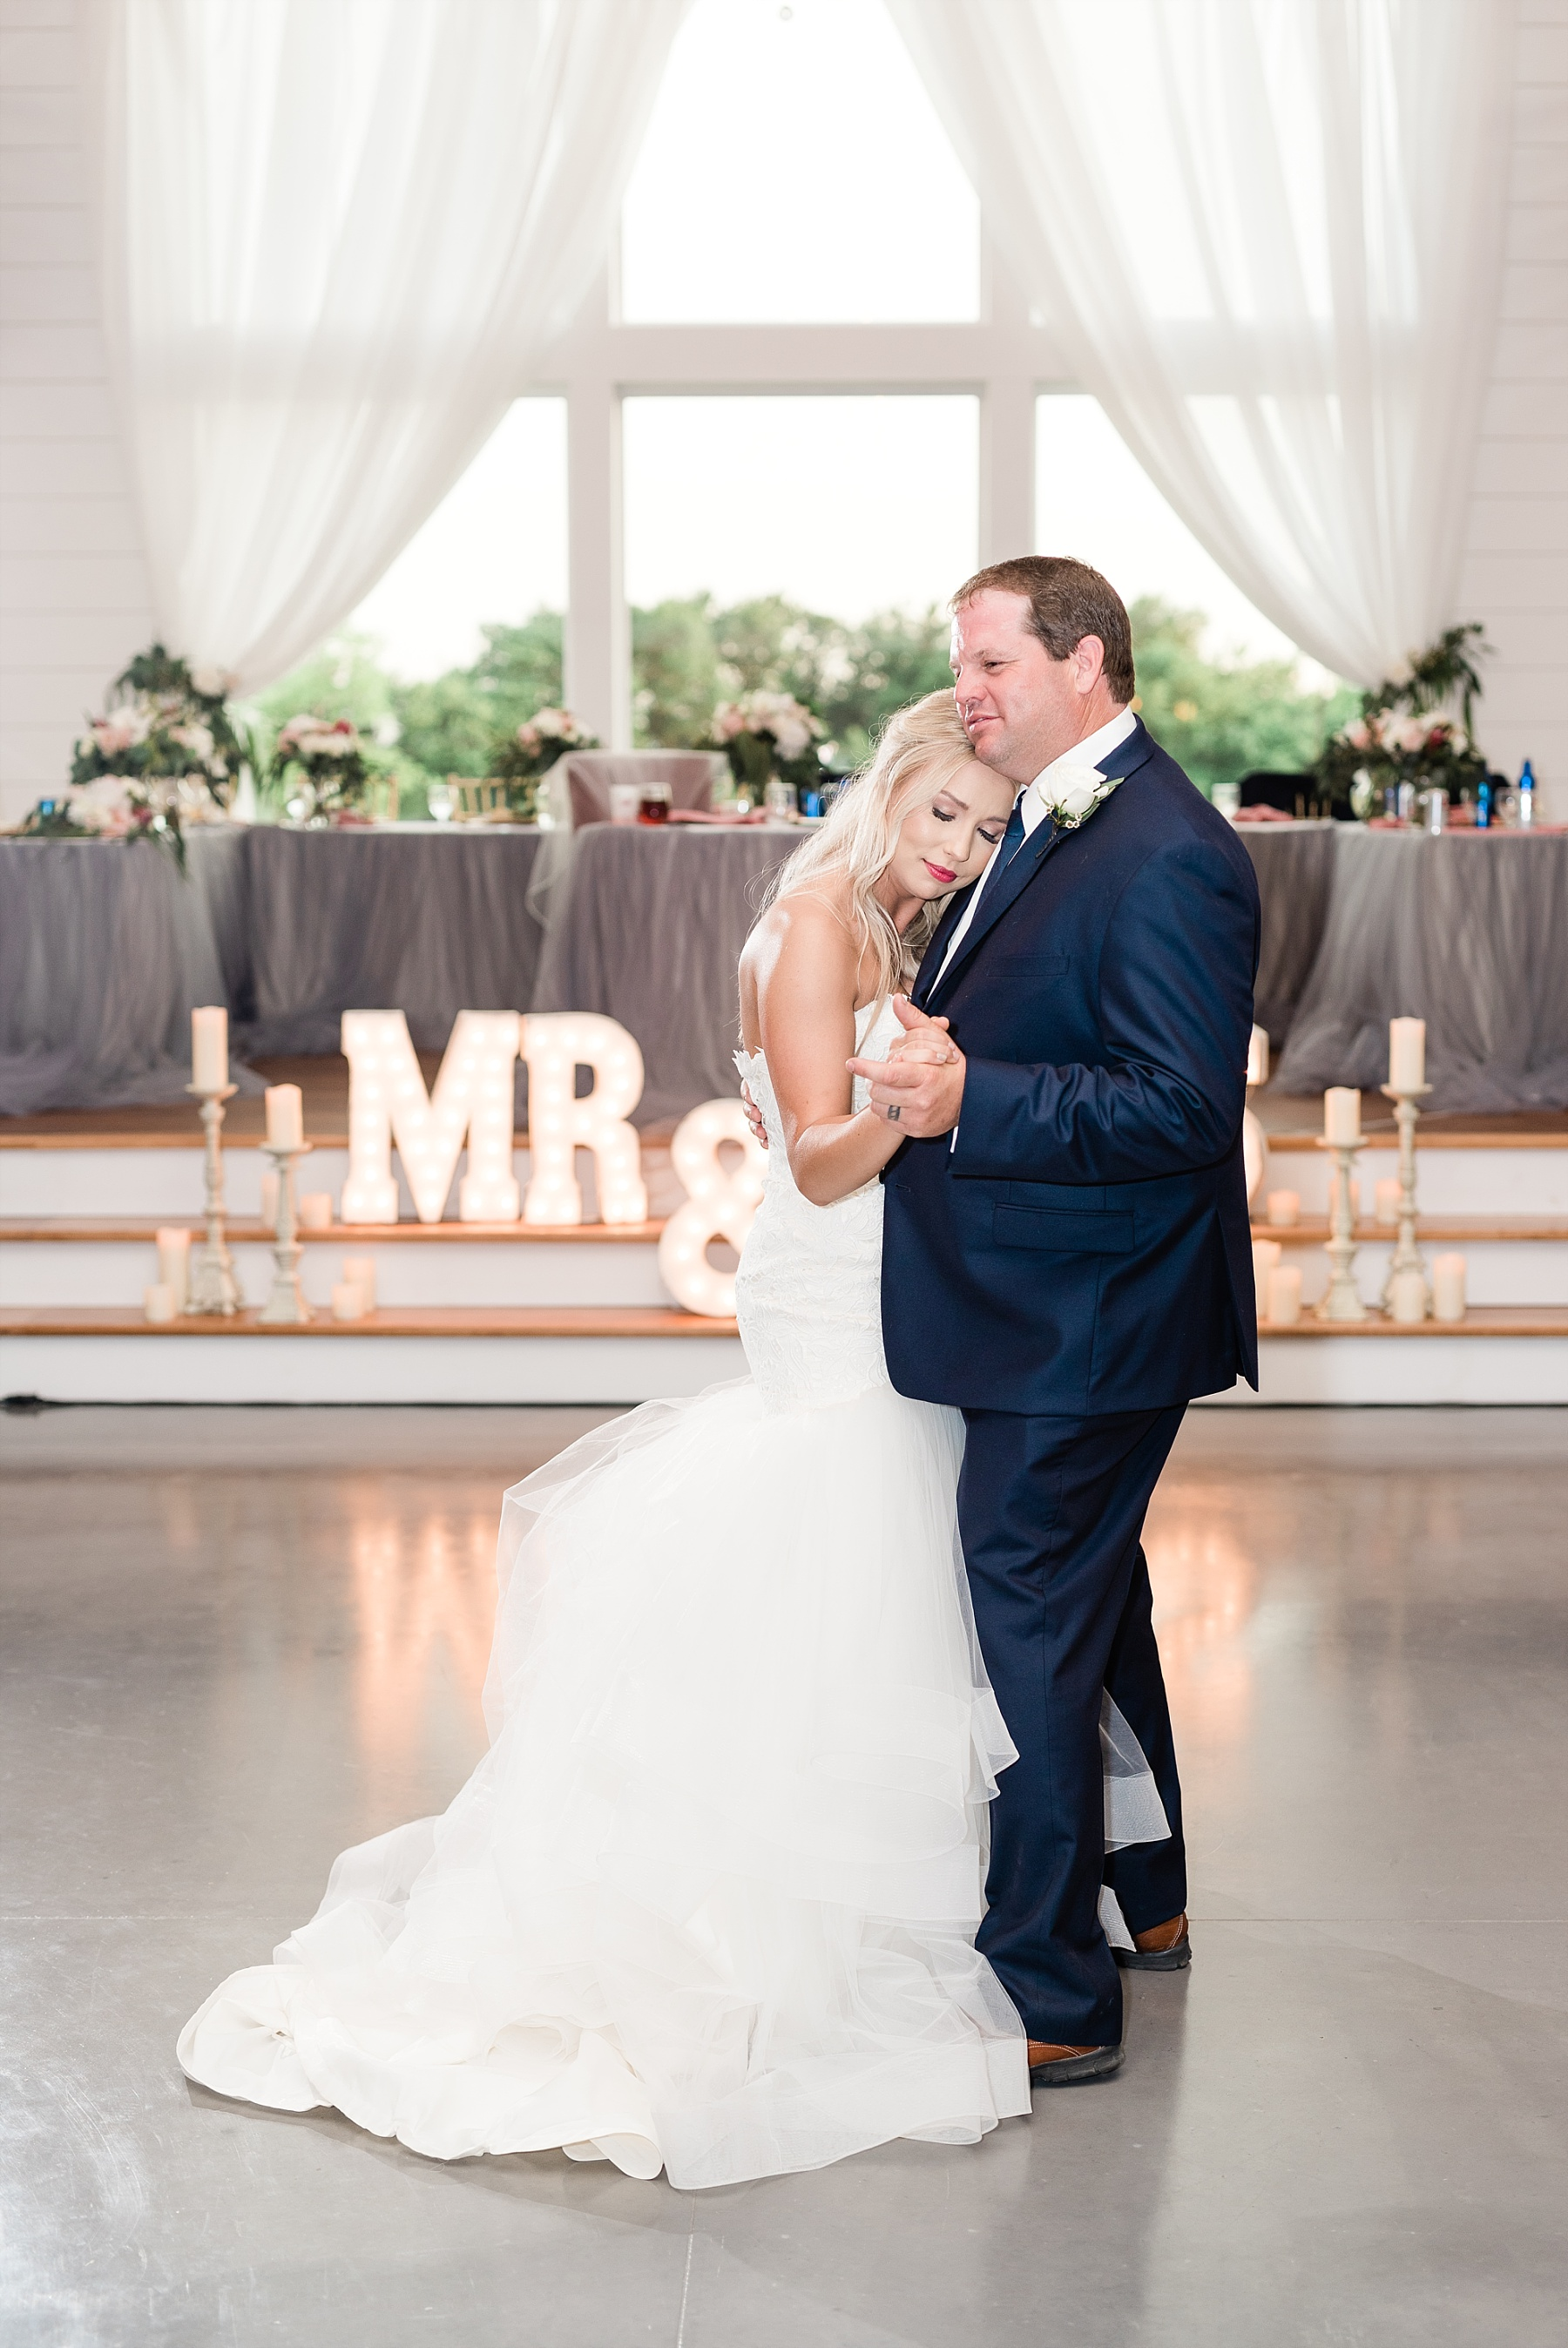 Stunning Heartfelt, Elegant, Fine Art, Chic, Outdoor Spring Wedding with Blush, Cream, Greenery, Rose Gold, and Sequins at Emerson Fields Venue by Kelsi Kliethermes Photography_0064.jpg